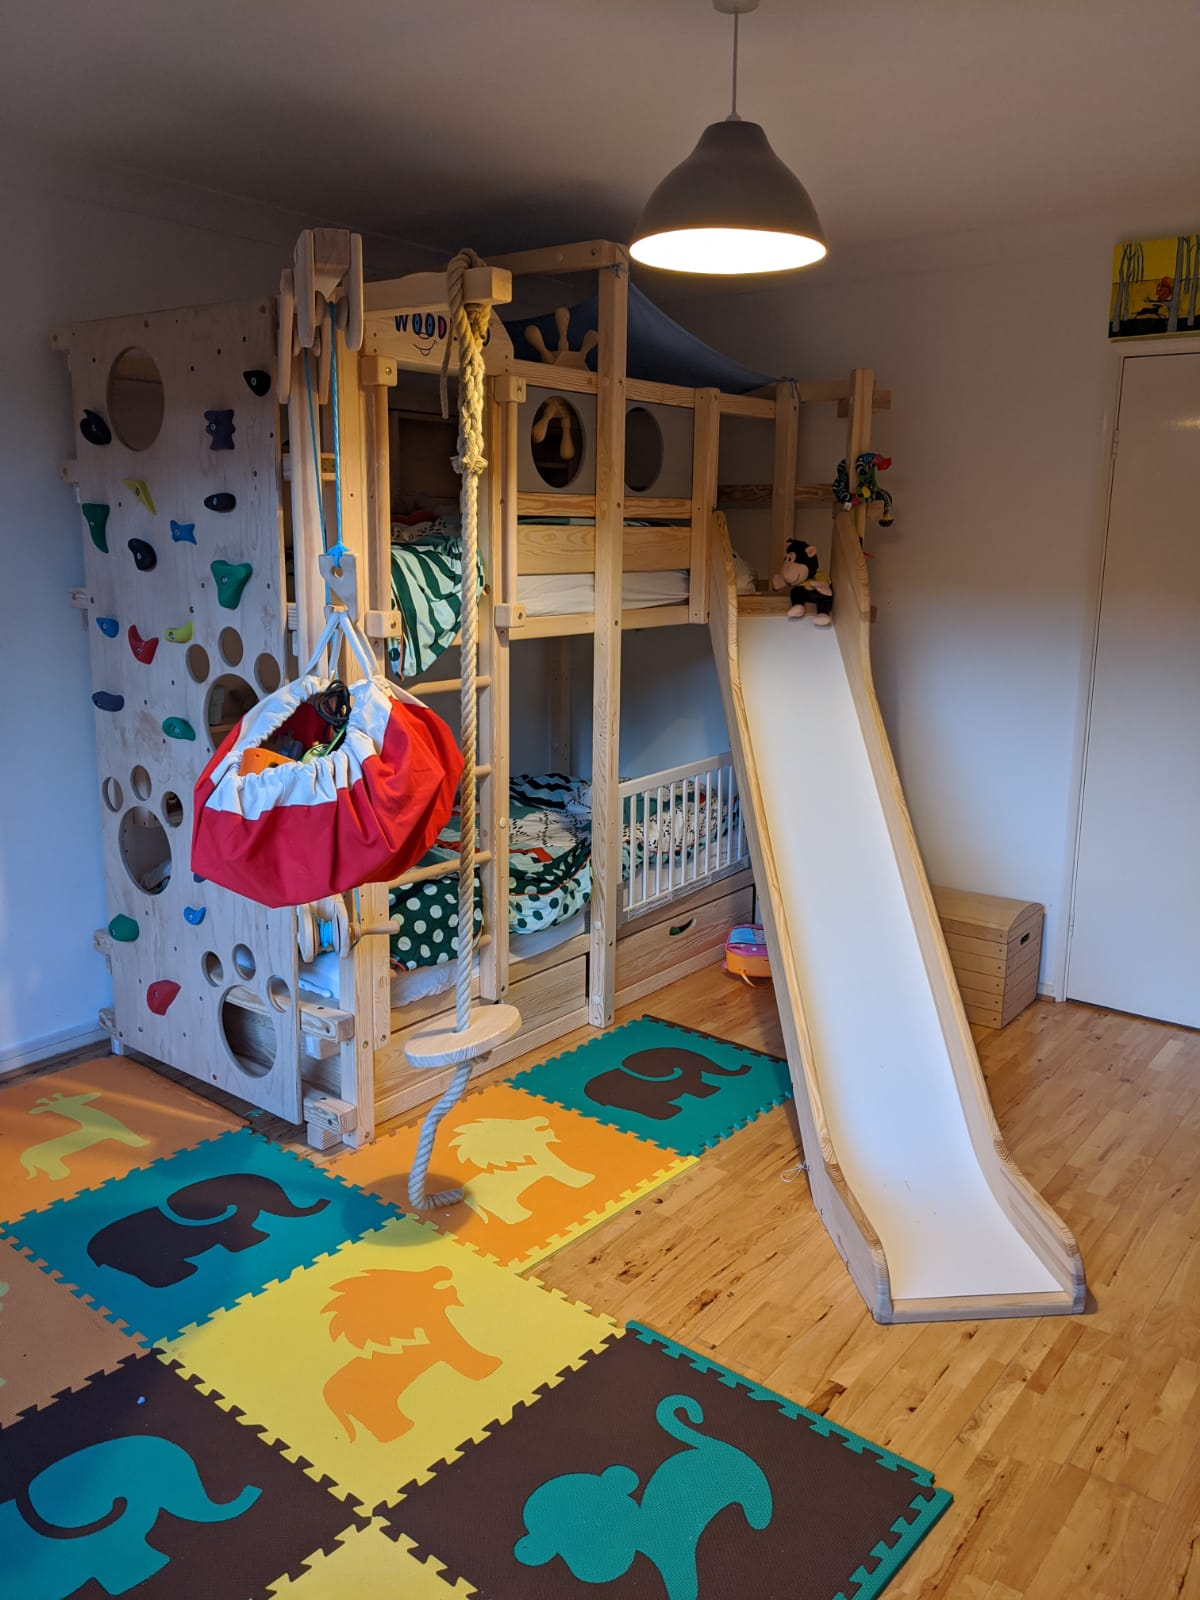 A real photo of MONTEREY bunk bed by DanielG (1)